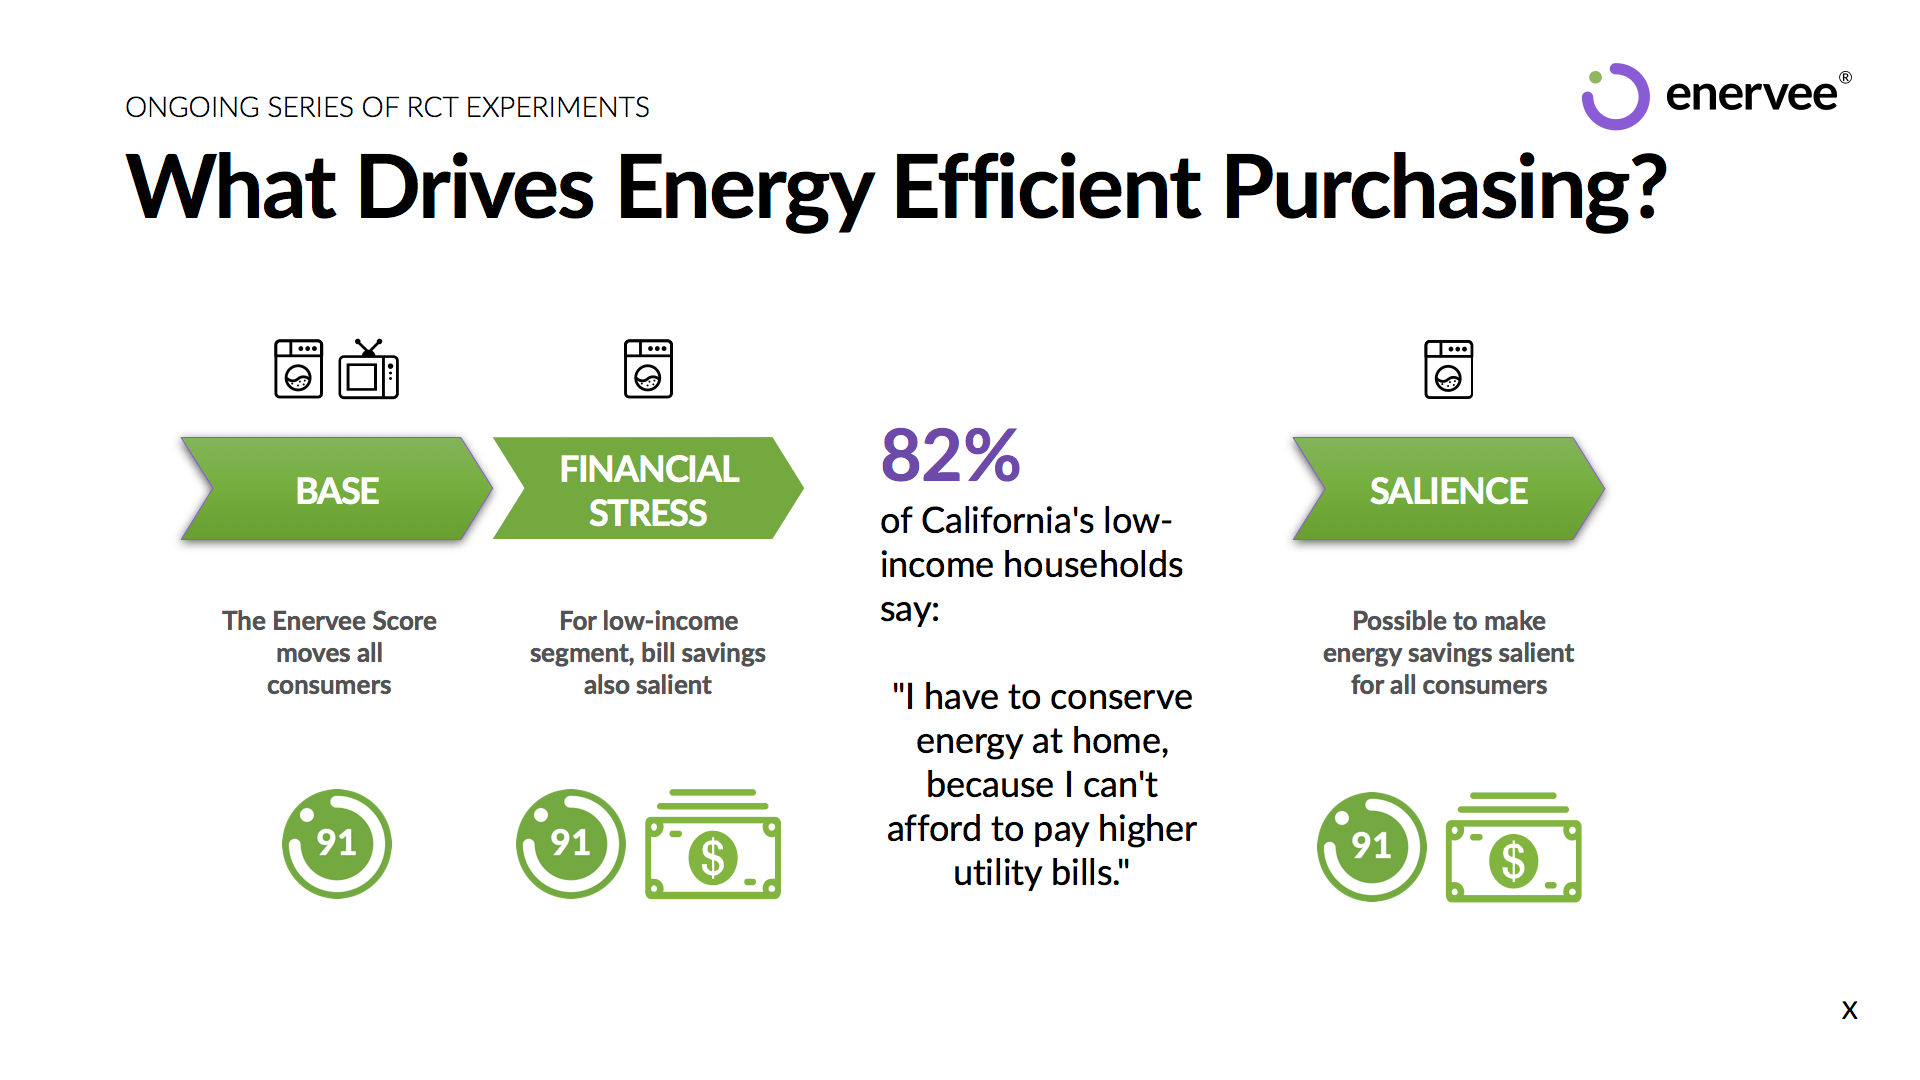 What drives energy efficient purchasing?